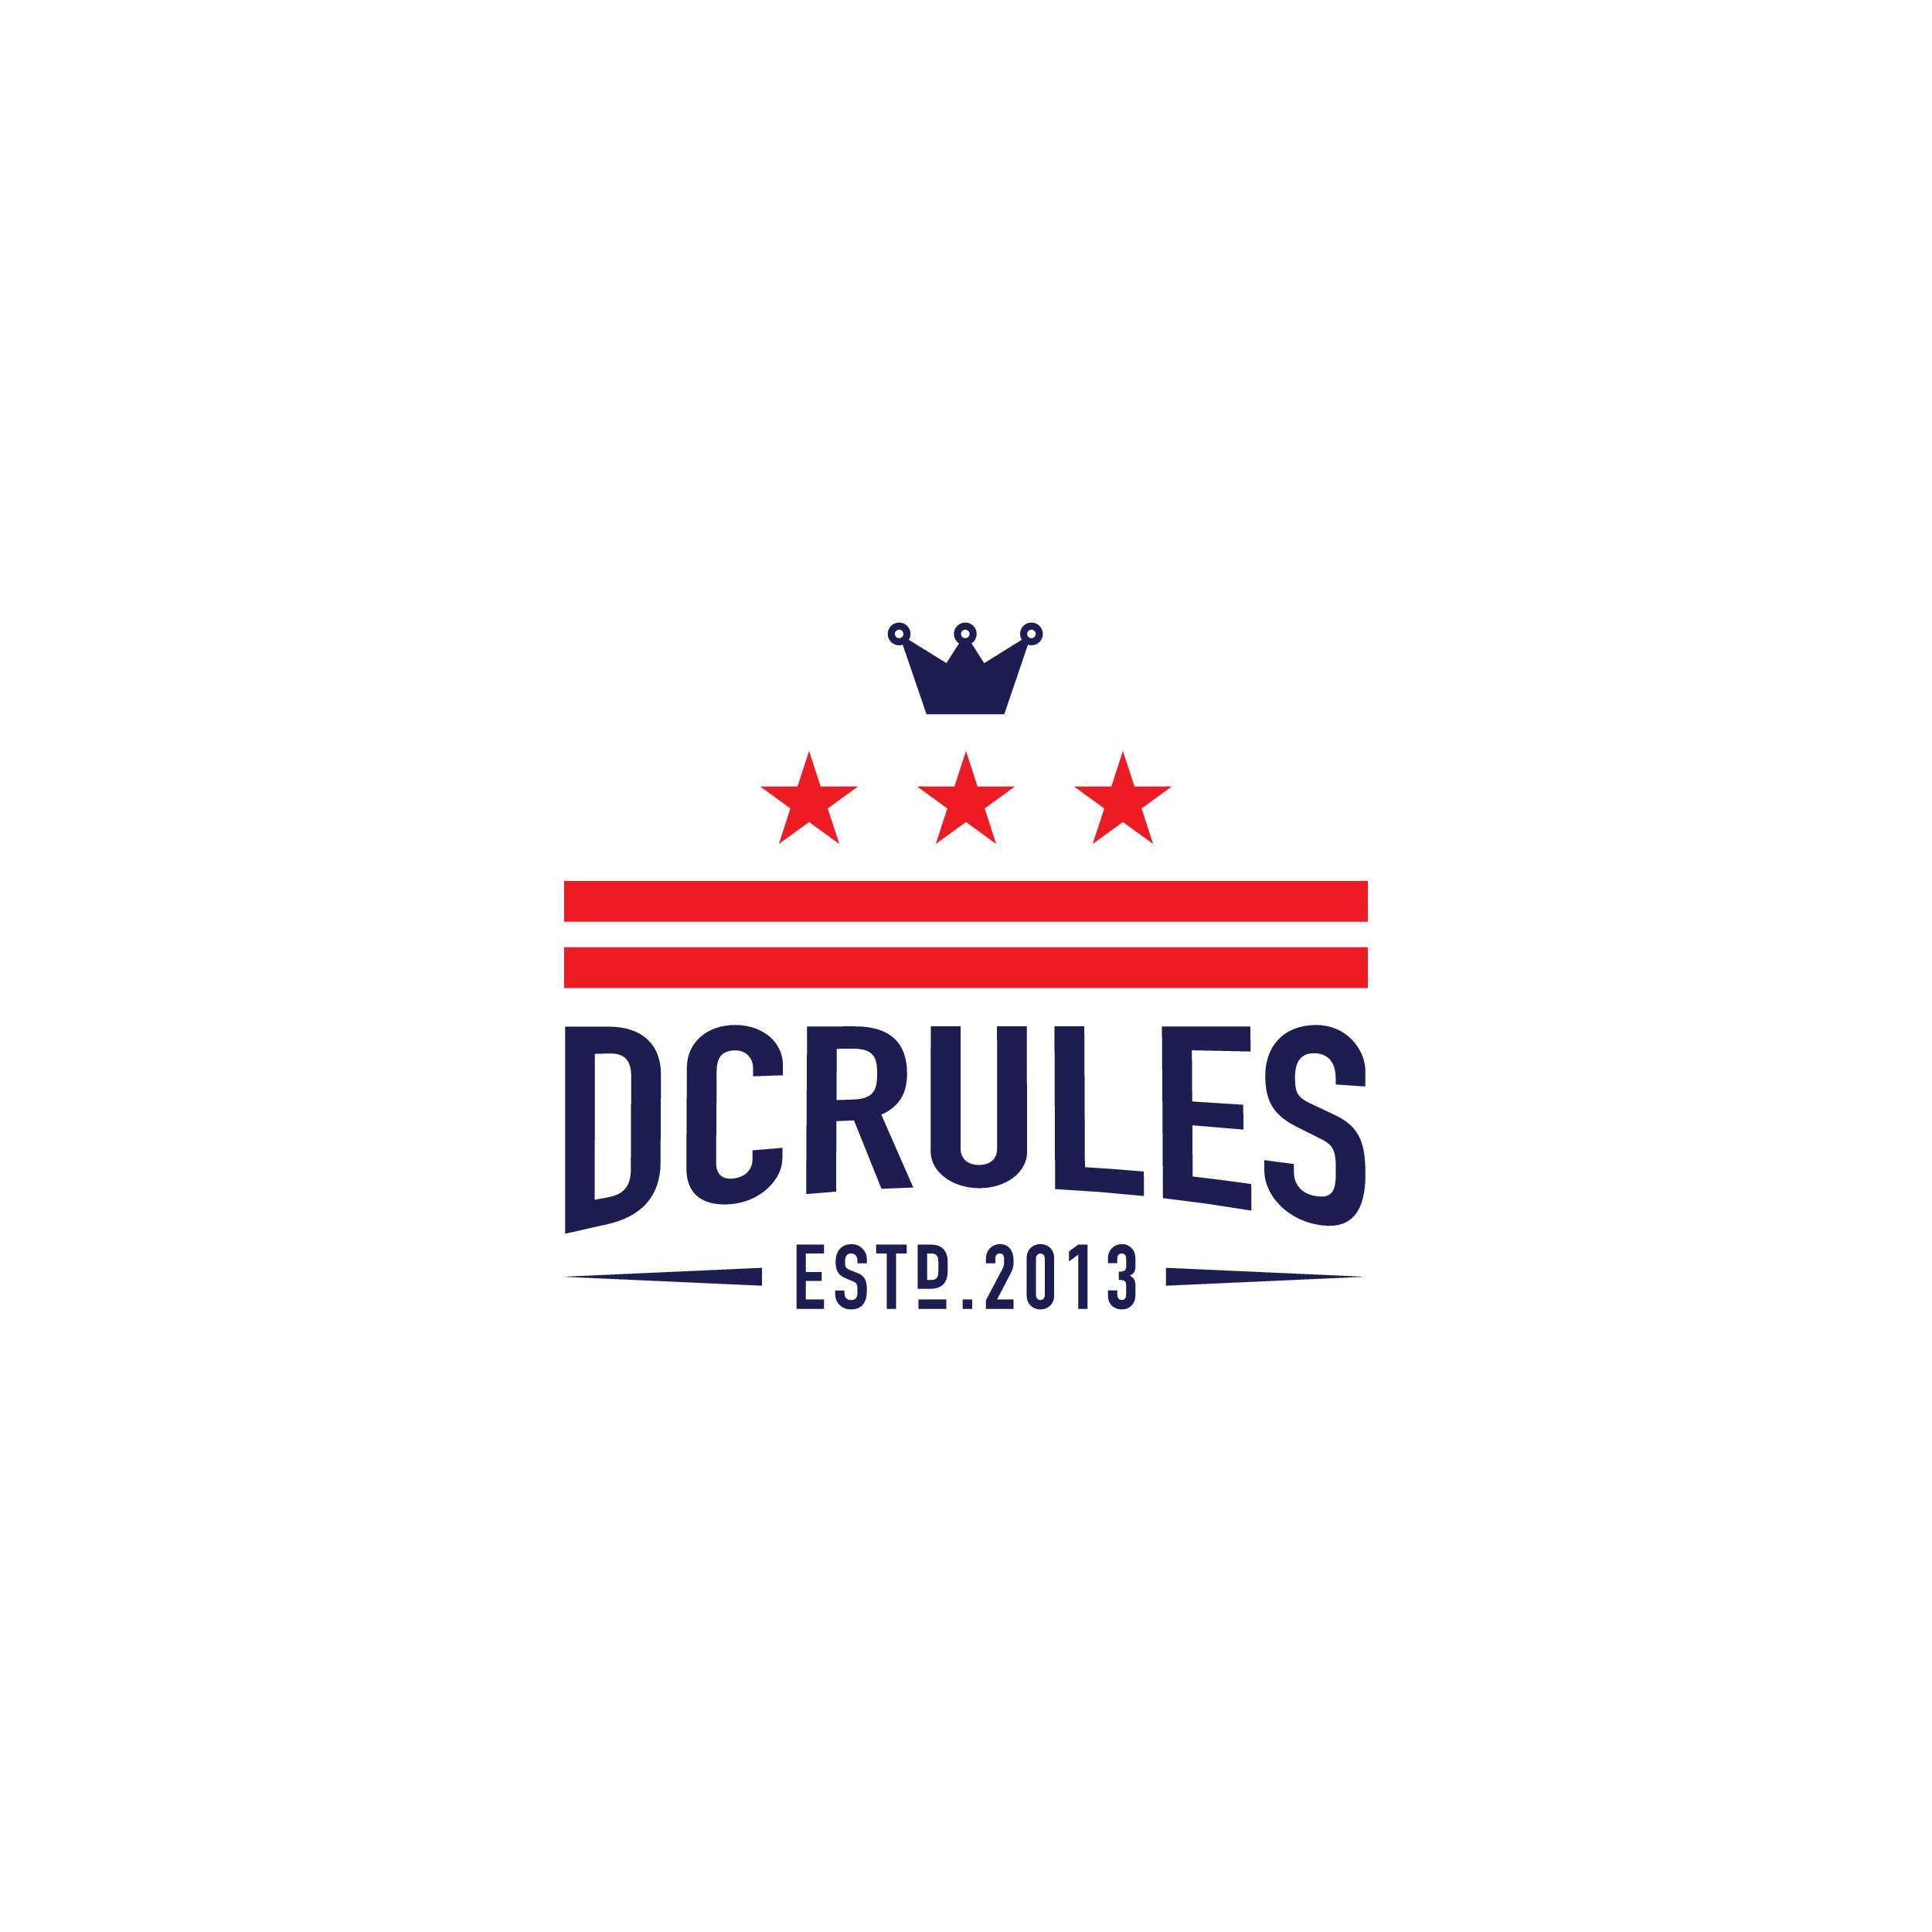 Create a vintage/hipster logo for DCRULES based on the DC State flag.